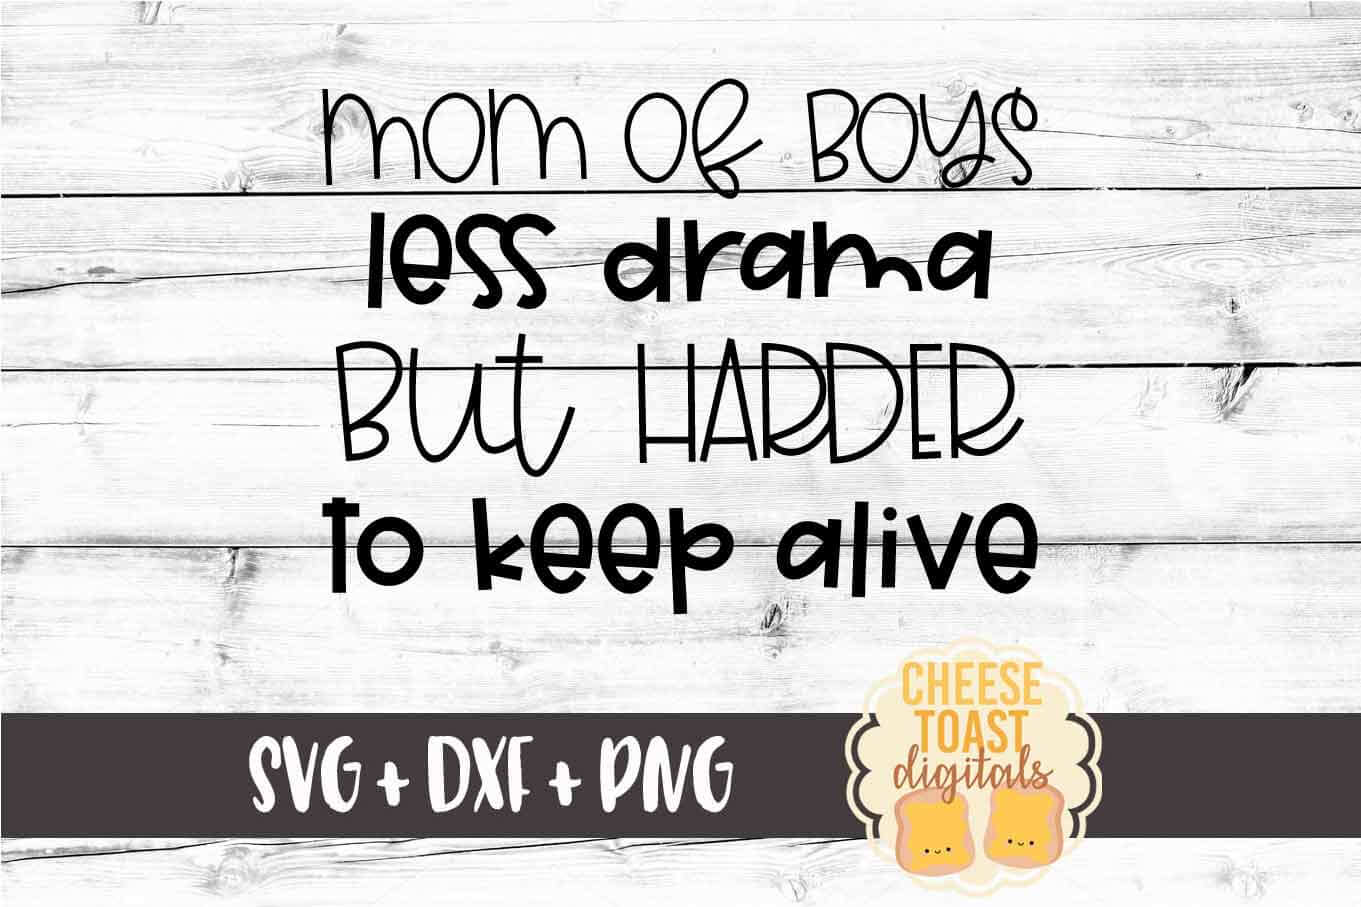 Mom of Boys Less Drama But Harder To Keep Alive SVG PNG DXF example image 2